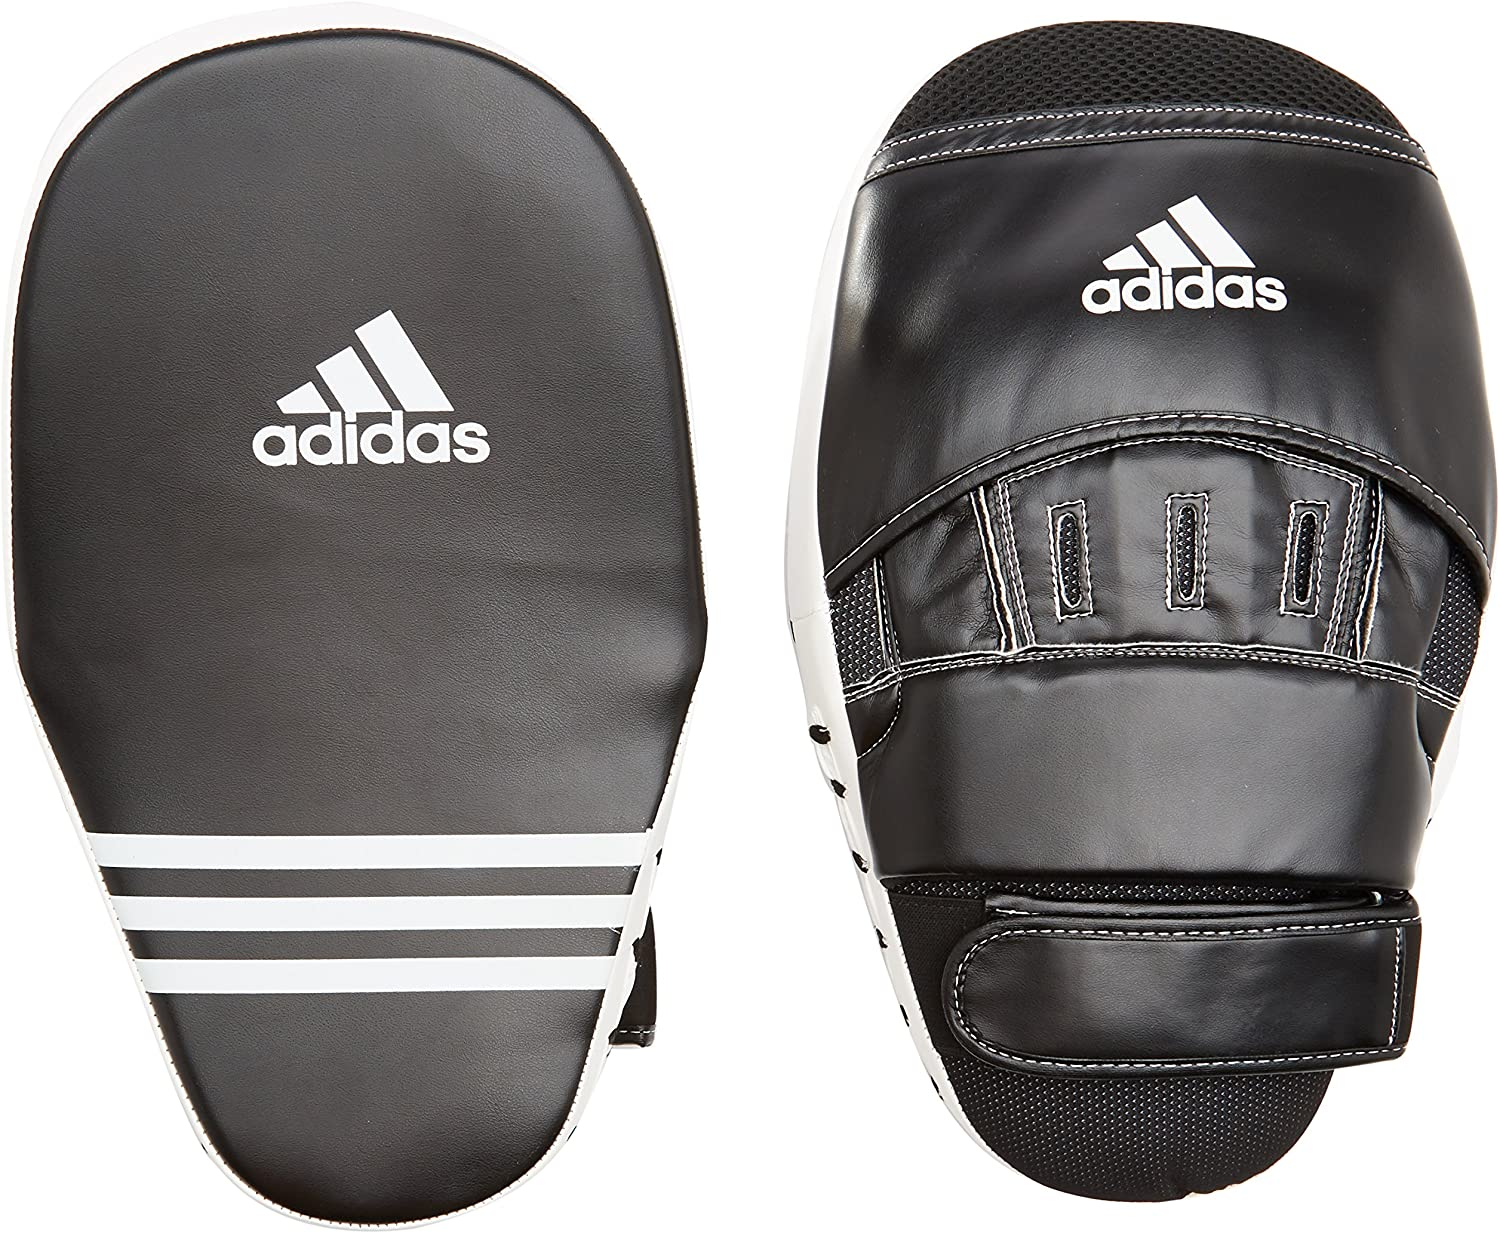 adidas Performance Max 59% OFF Boxzu Complete Free Shipping Accessory